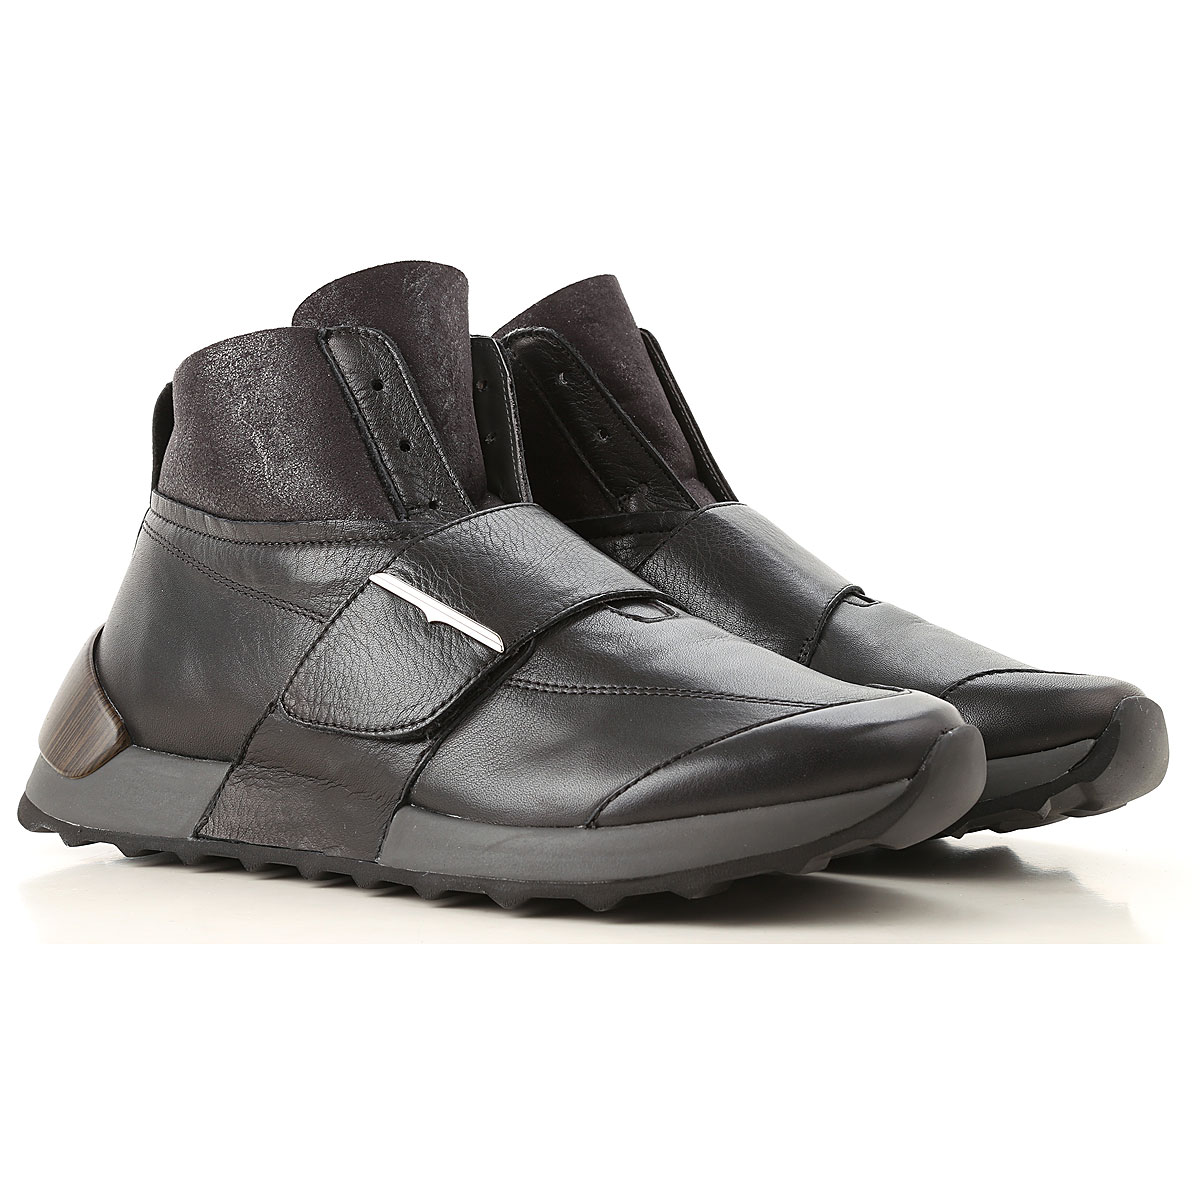 Image of Alberto Guardiani Sneakers for Men, Black, Leather, 2017, 10 10.5 11.5 7.5 8 9